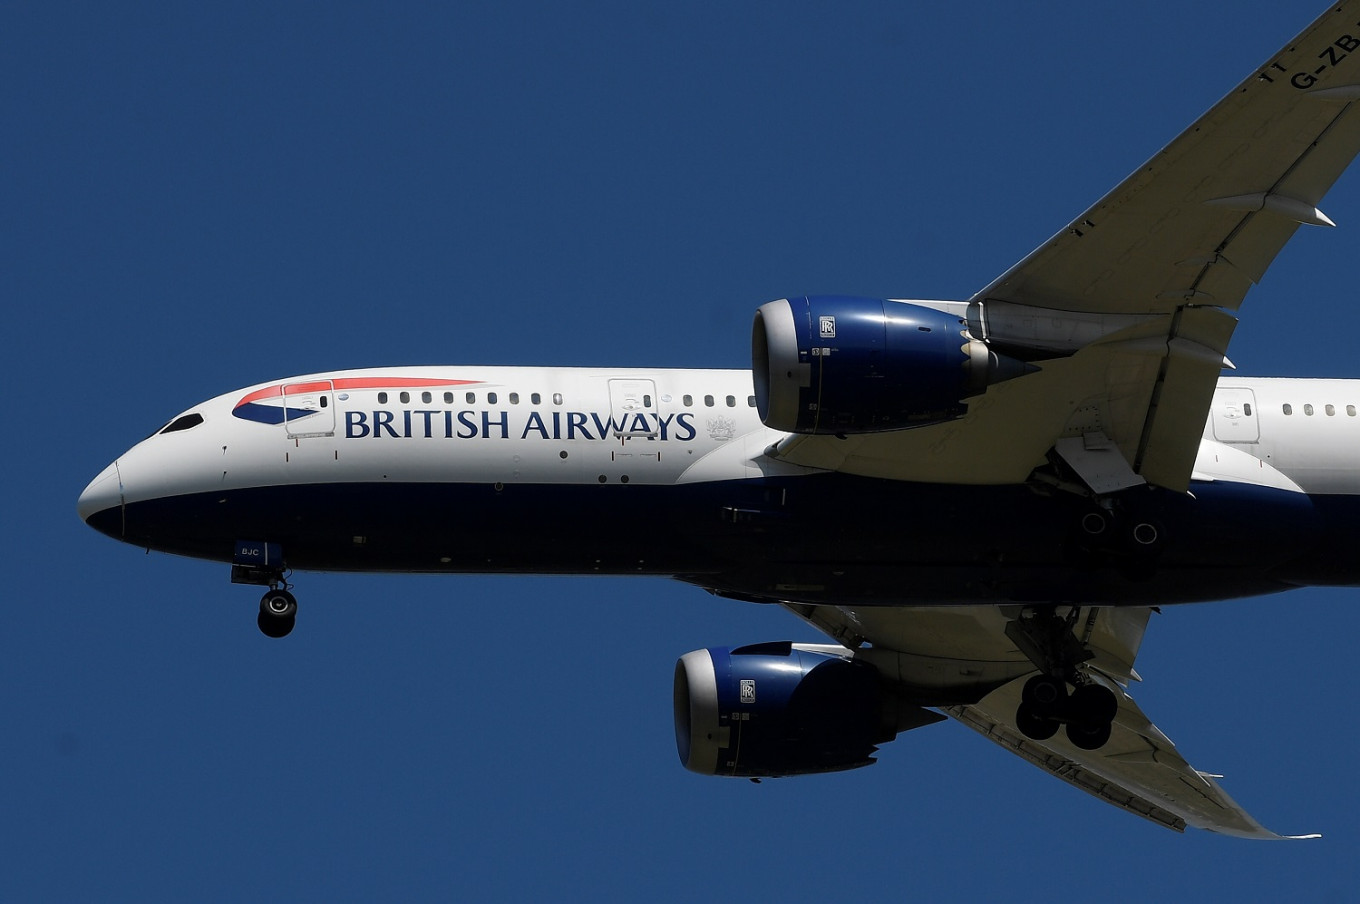 New idea for your Santa list? Crockery, slippers or trolleys from British Airways